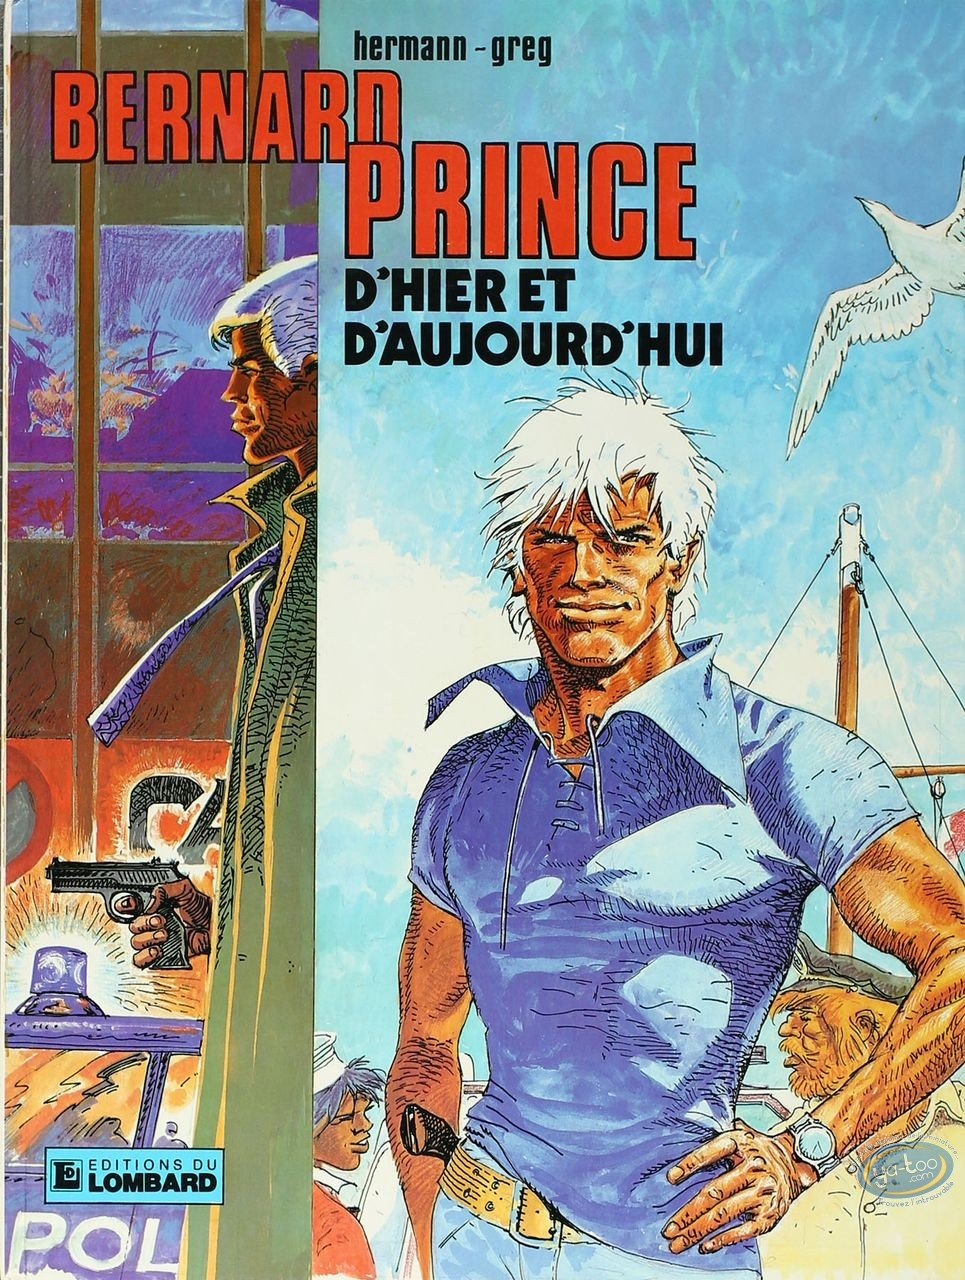 Listed European Comic Books, Bernard Prince : D'hier et d'Aujourd'hui (very good condition)